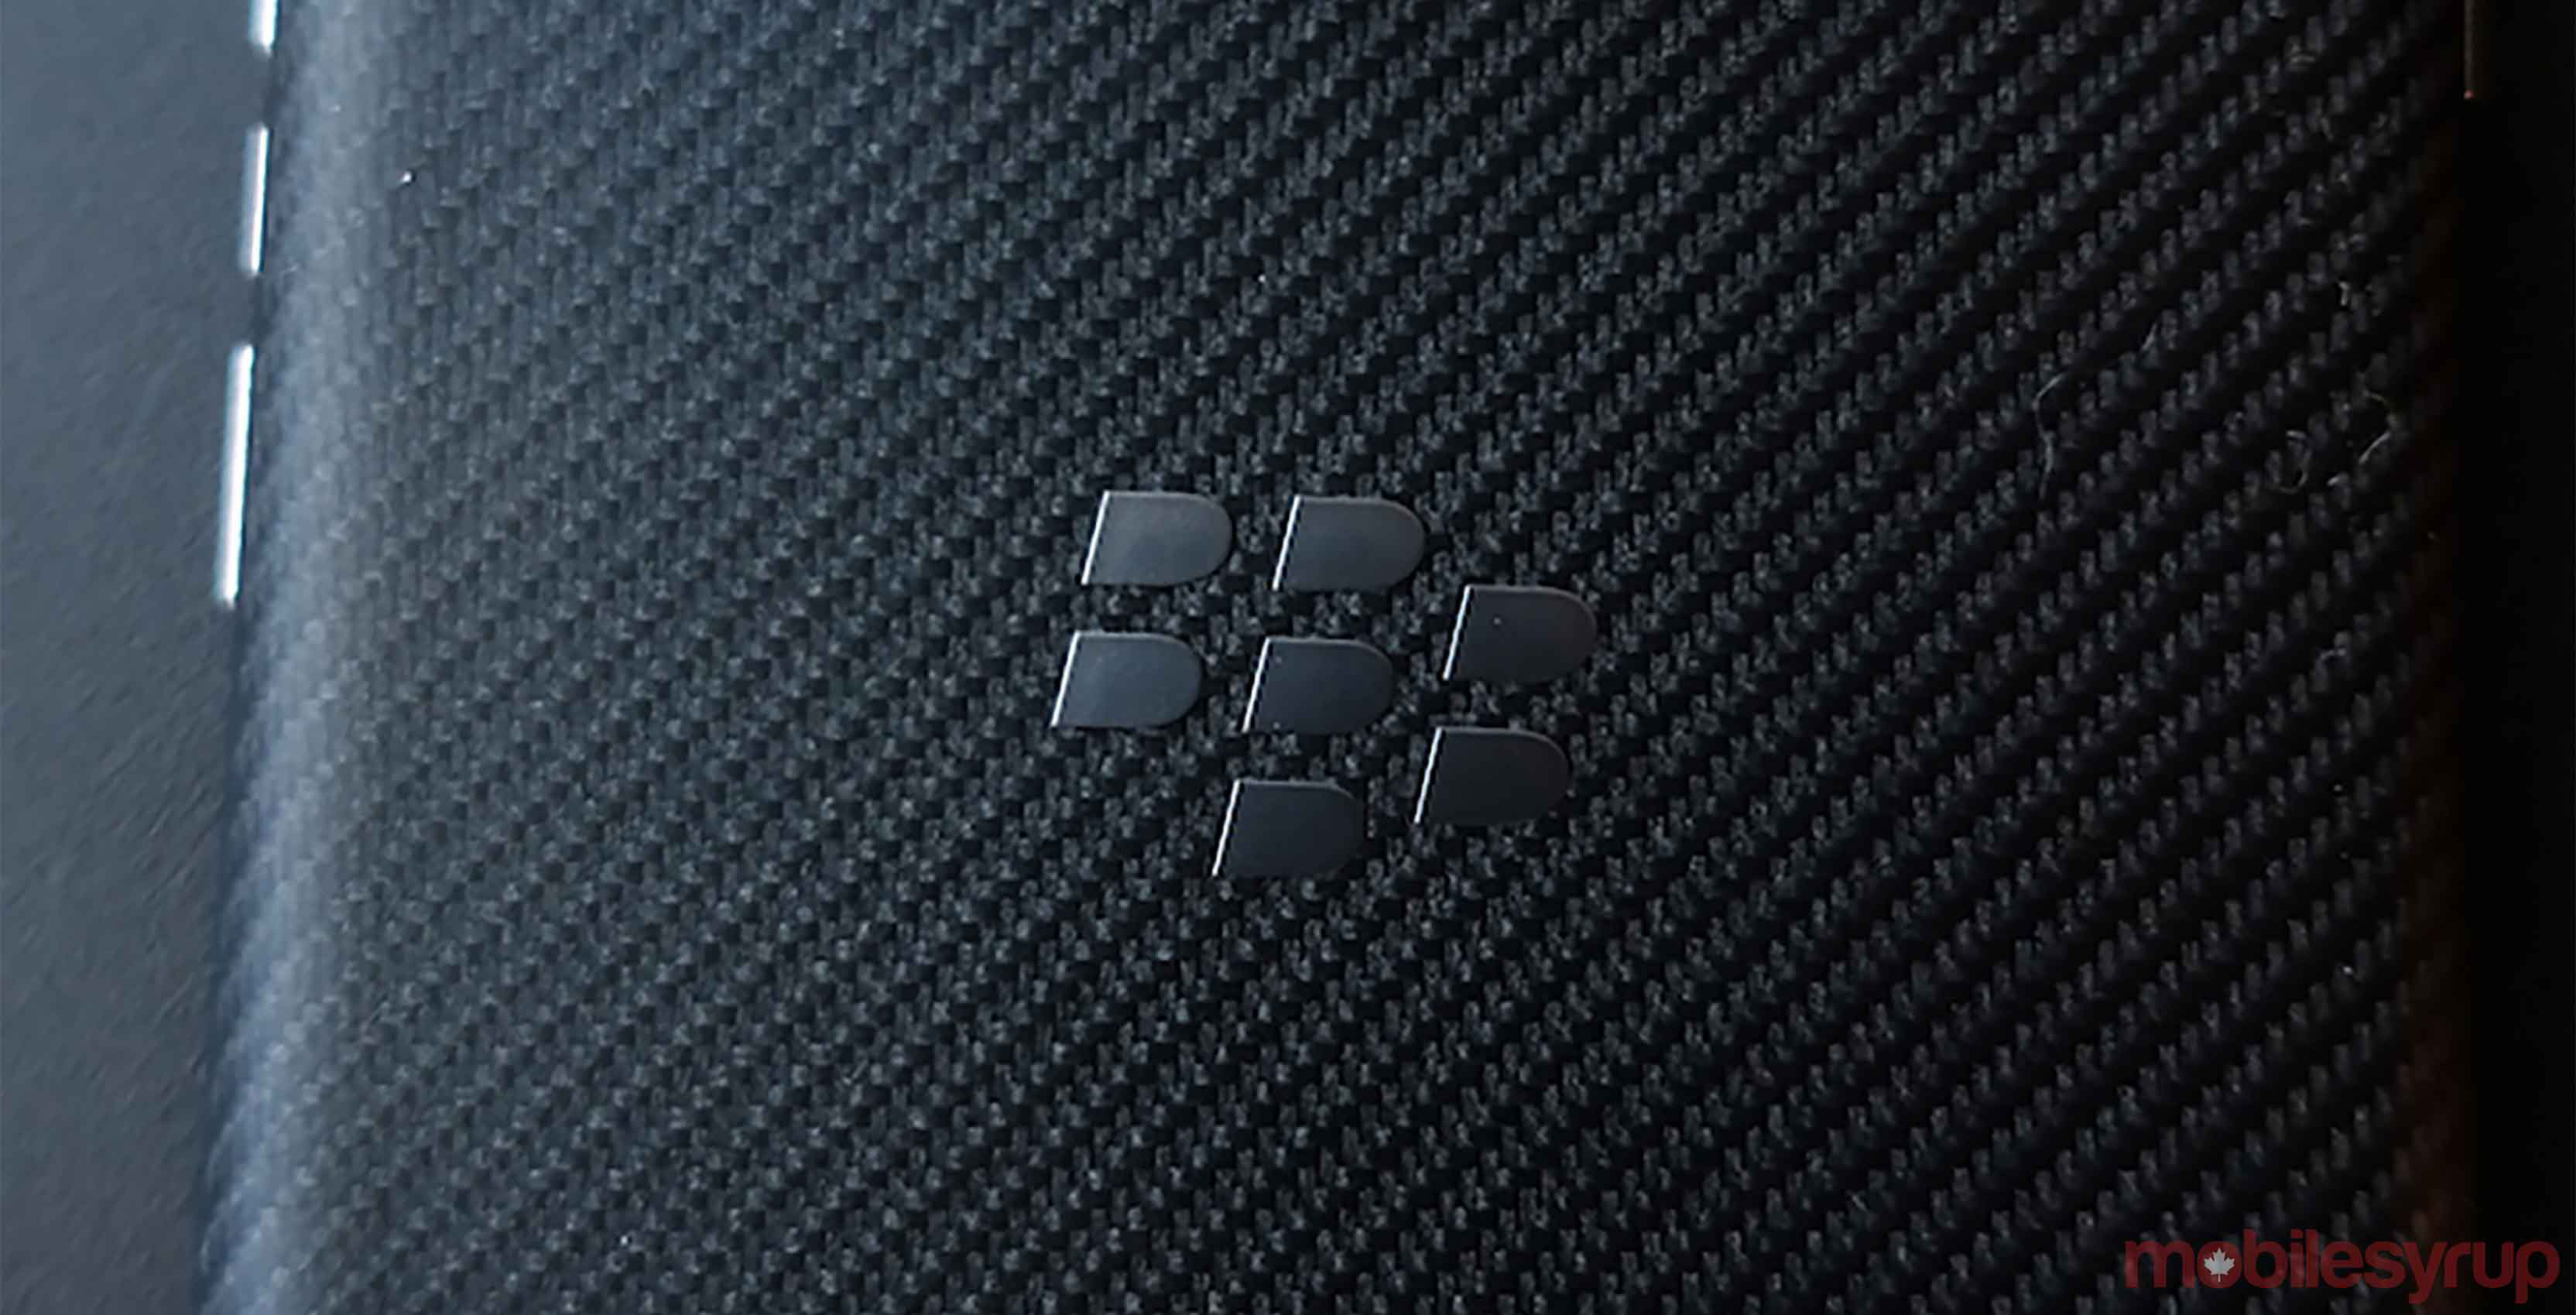 An image of the BlackBerry logo on the back of a BlackBerry phone